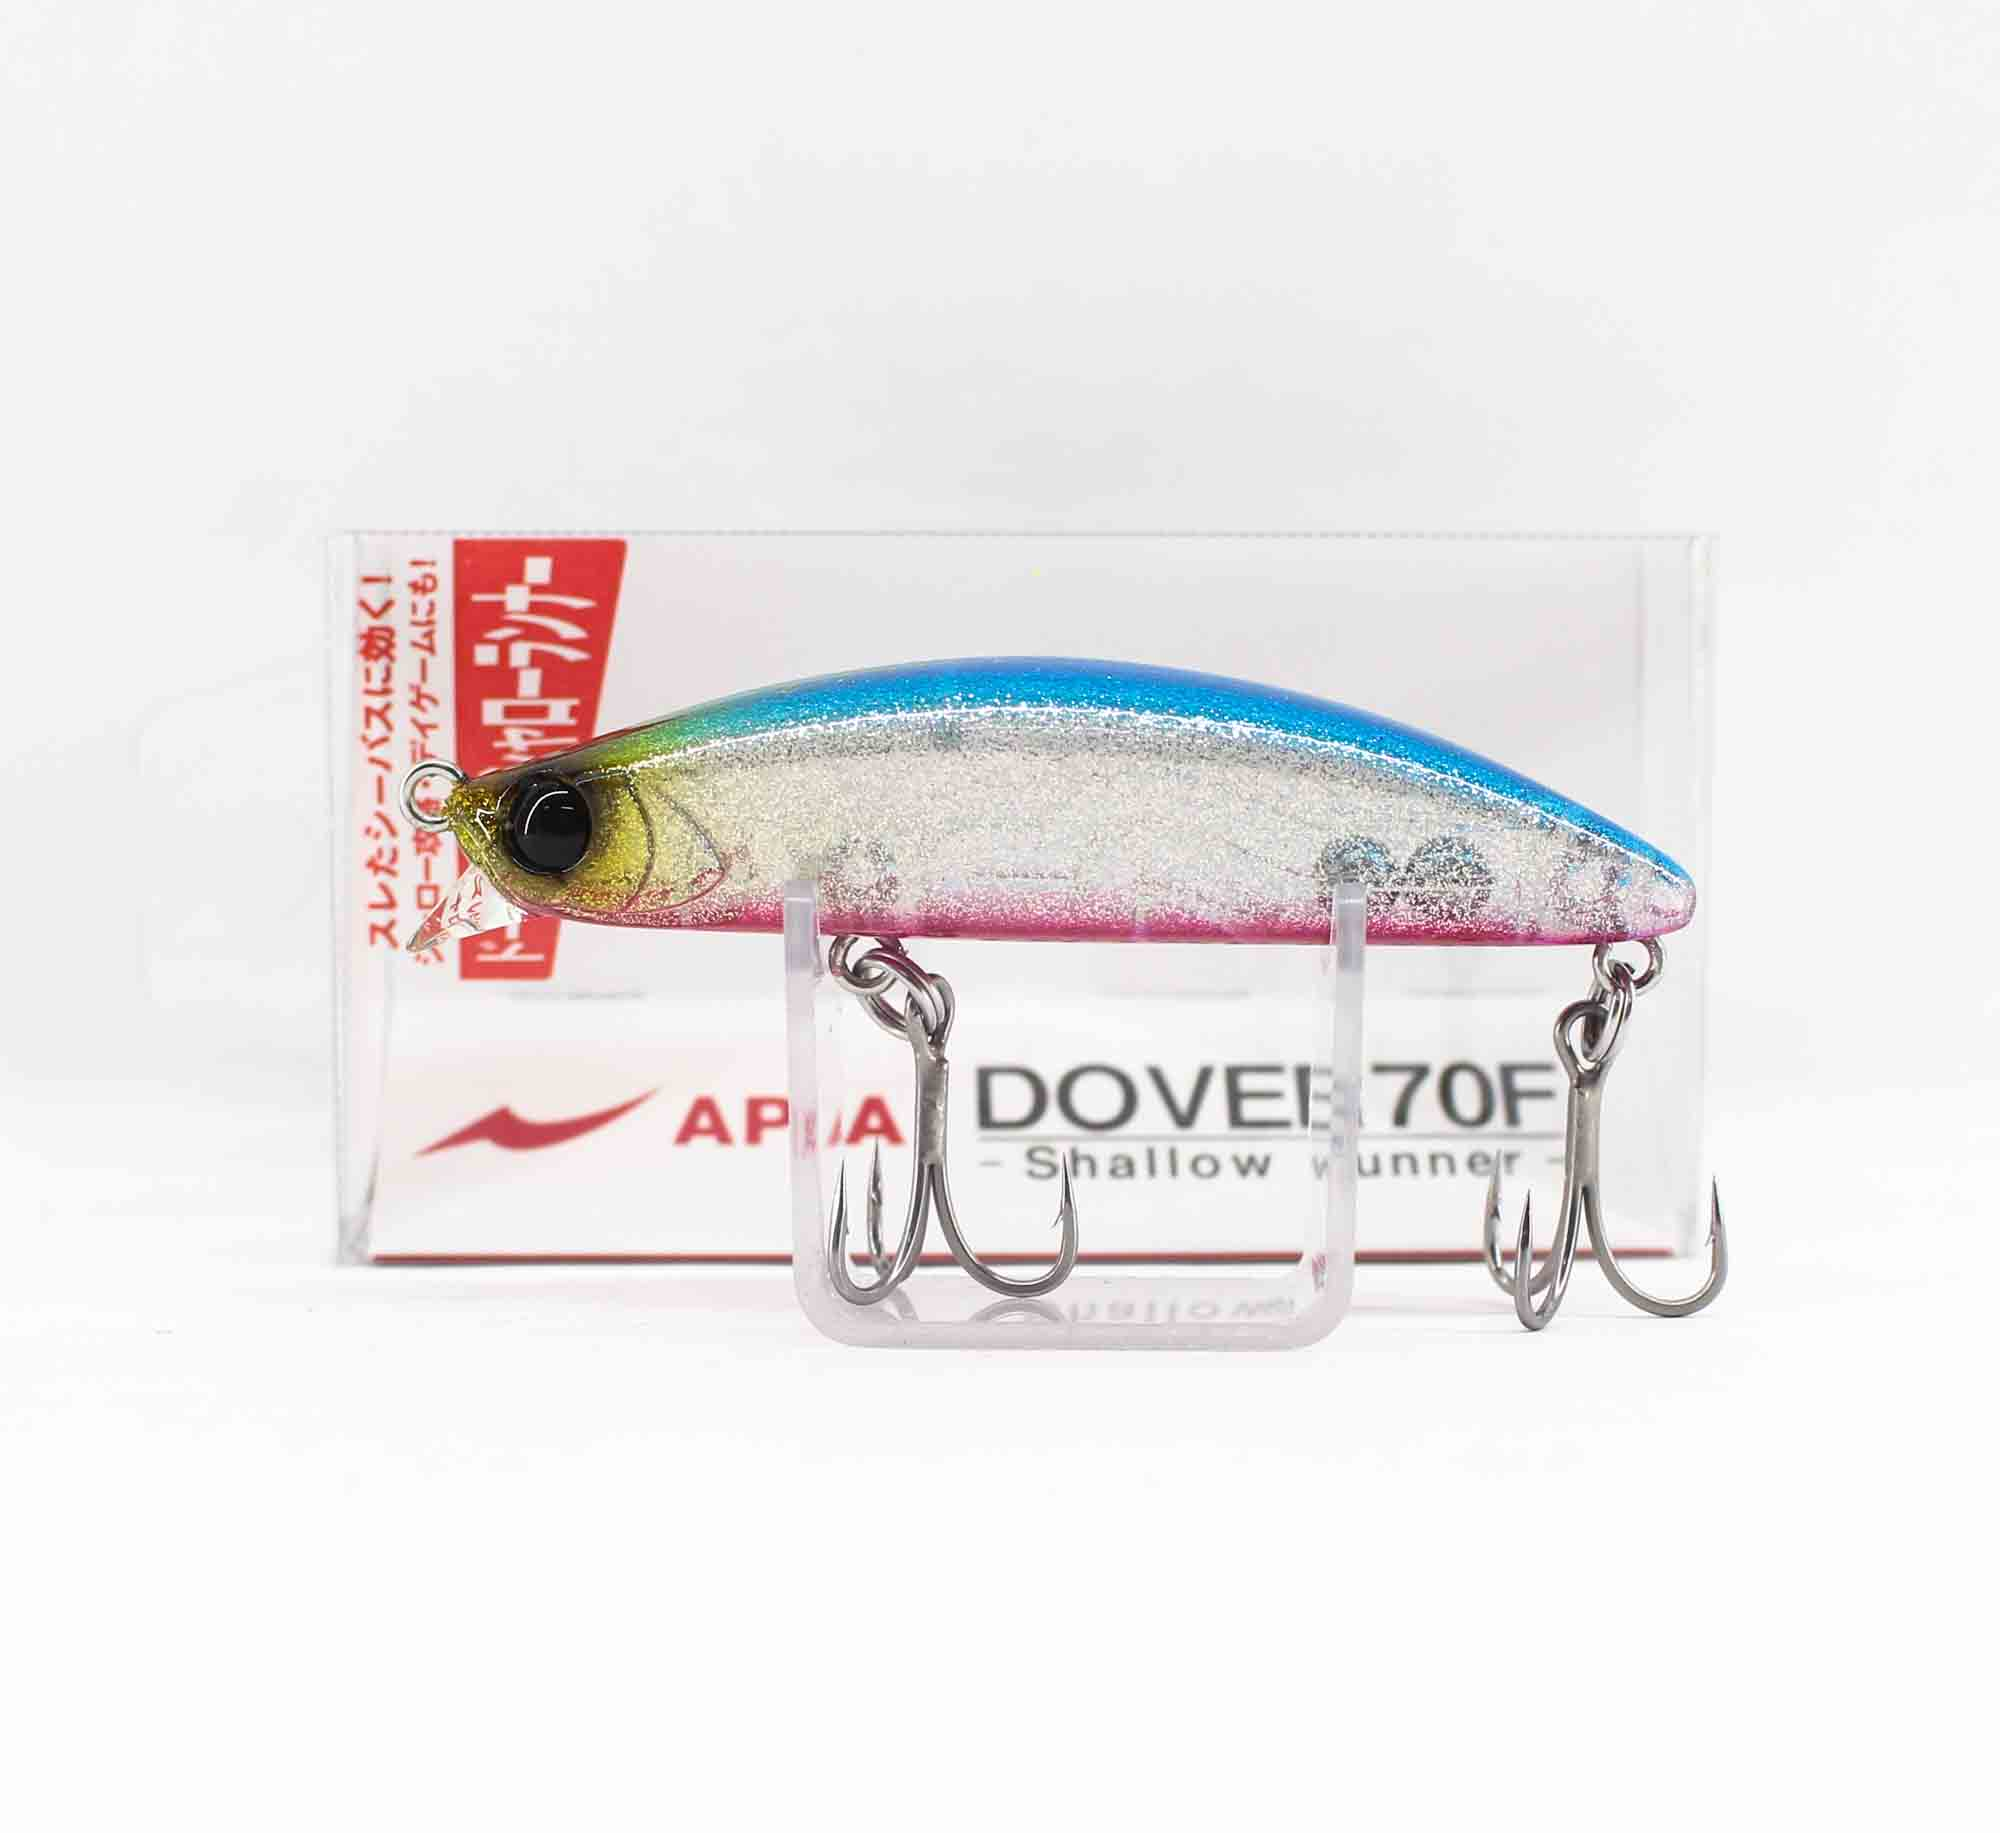 Apia Dover 70 F Floating Lure 05 (8634)